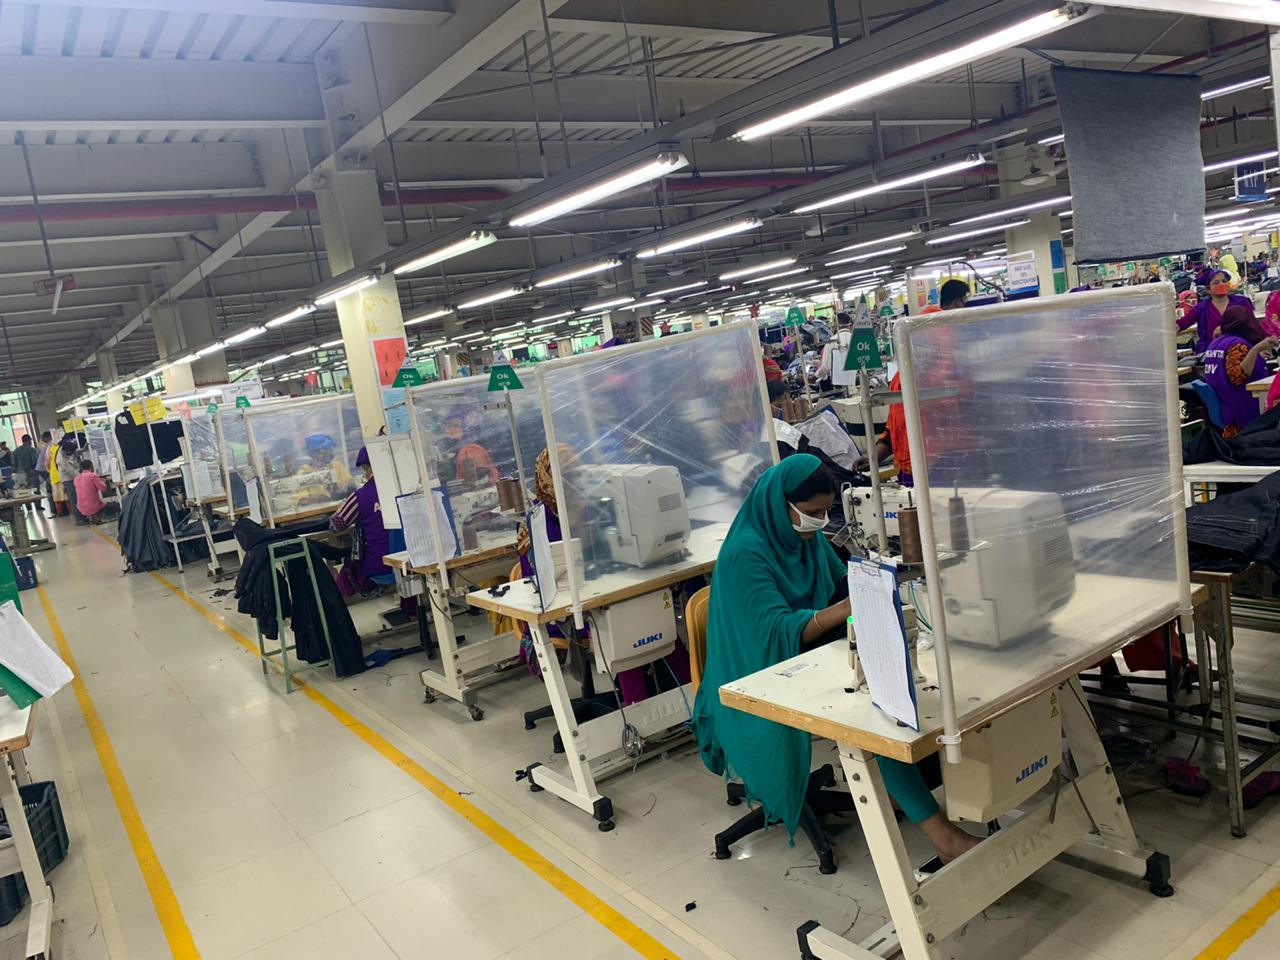 With funding in place and a new managing director, the RSC seeks united oversight for Bangladesh's hundreds of garment-producing factories.